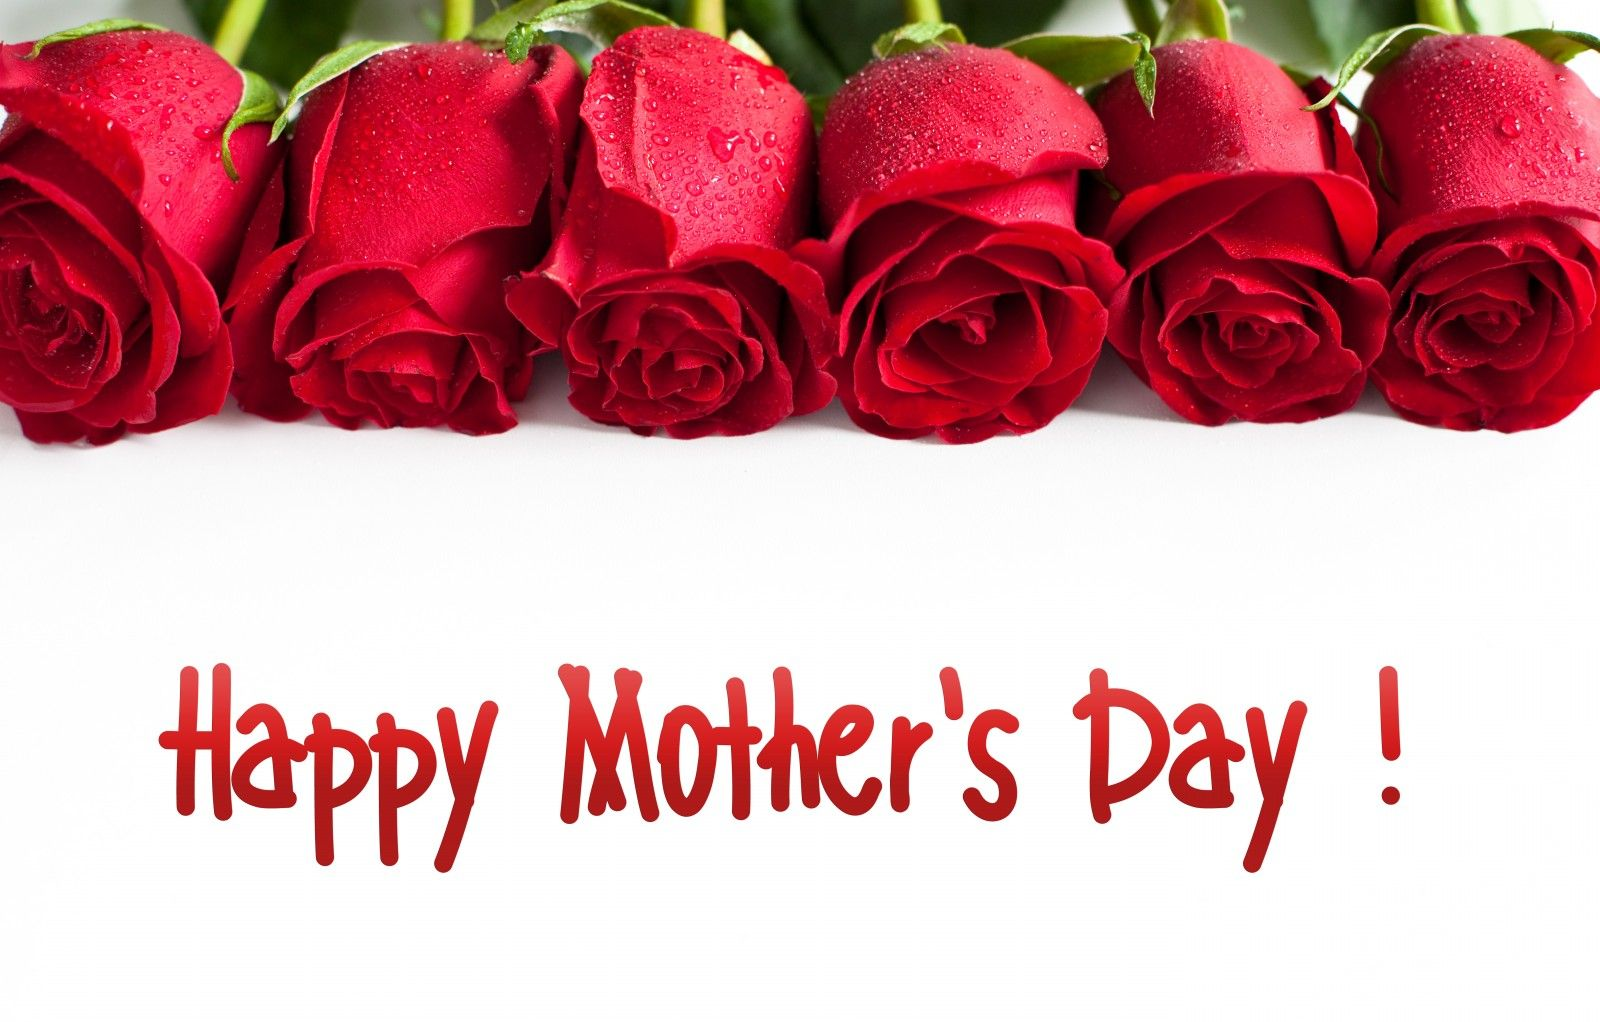 Happy Mothers Day Cards Happy Mothers Day Images Happy Mothers Day Pictures Happy Mothers Day Wishes